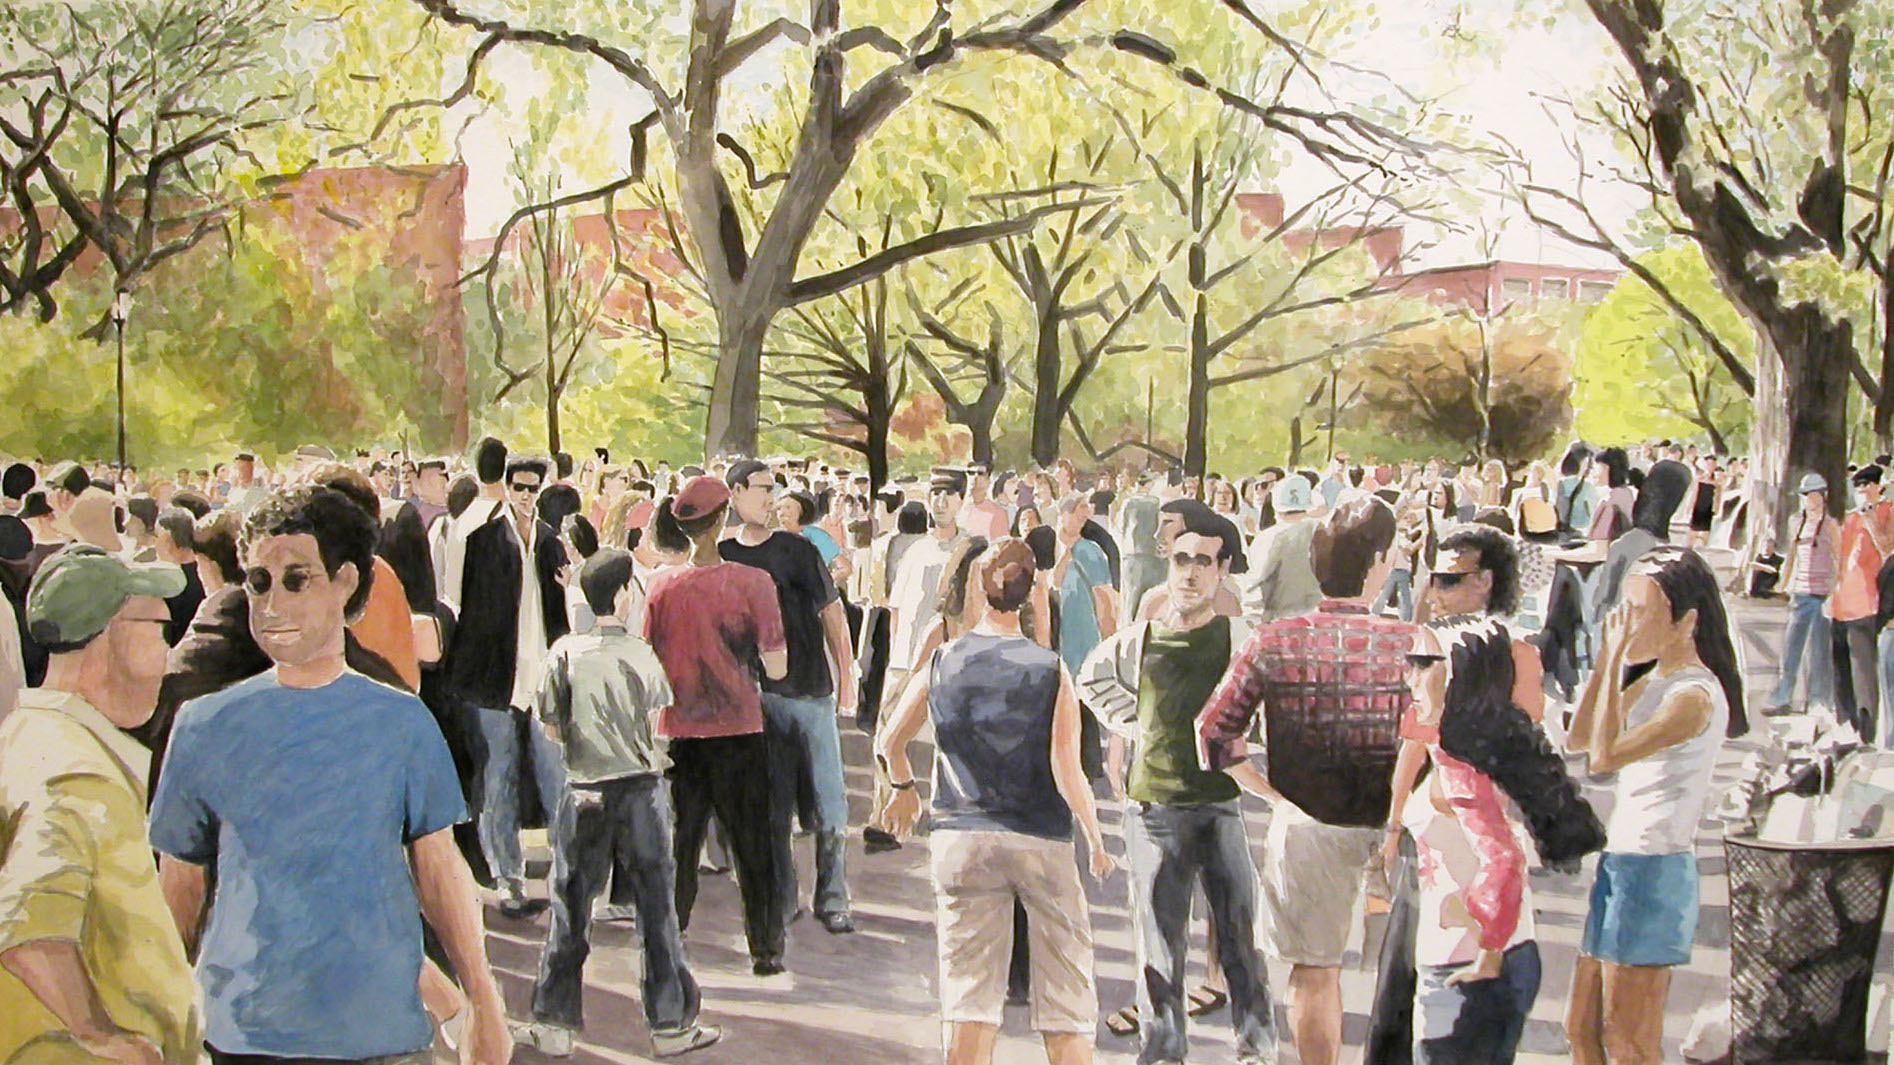 Park Crowd, 2003, watercolor & acrylic on paper, 34 x 60 in.